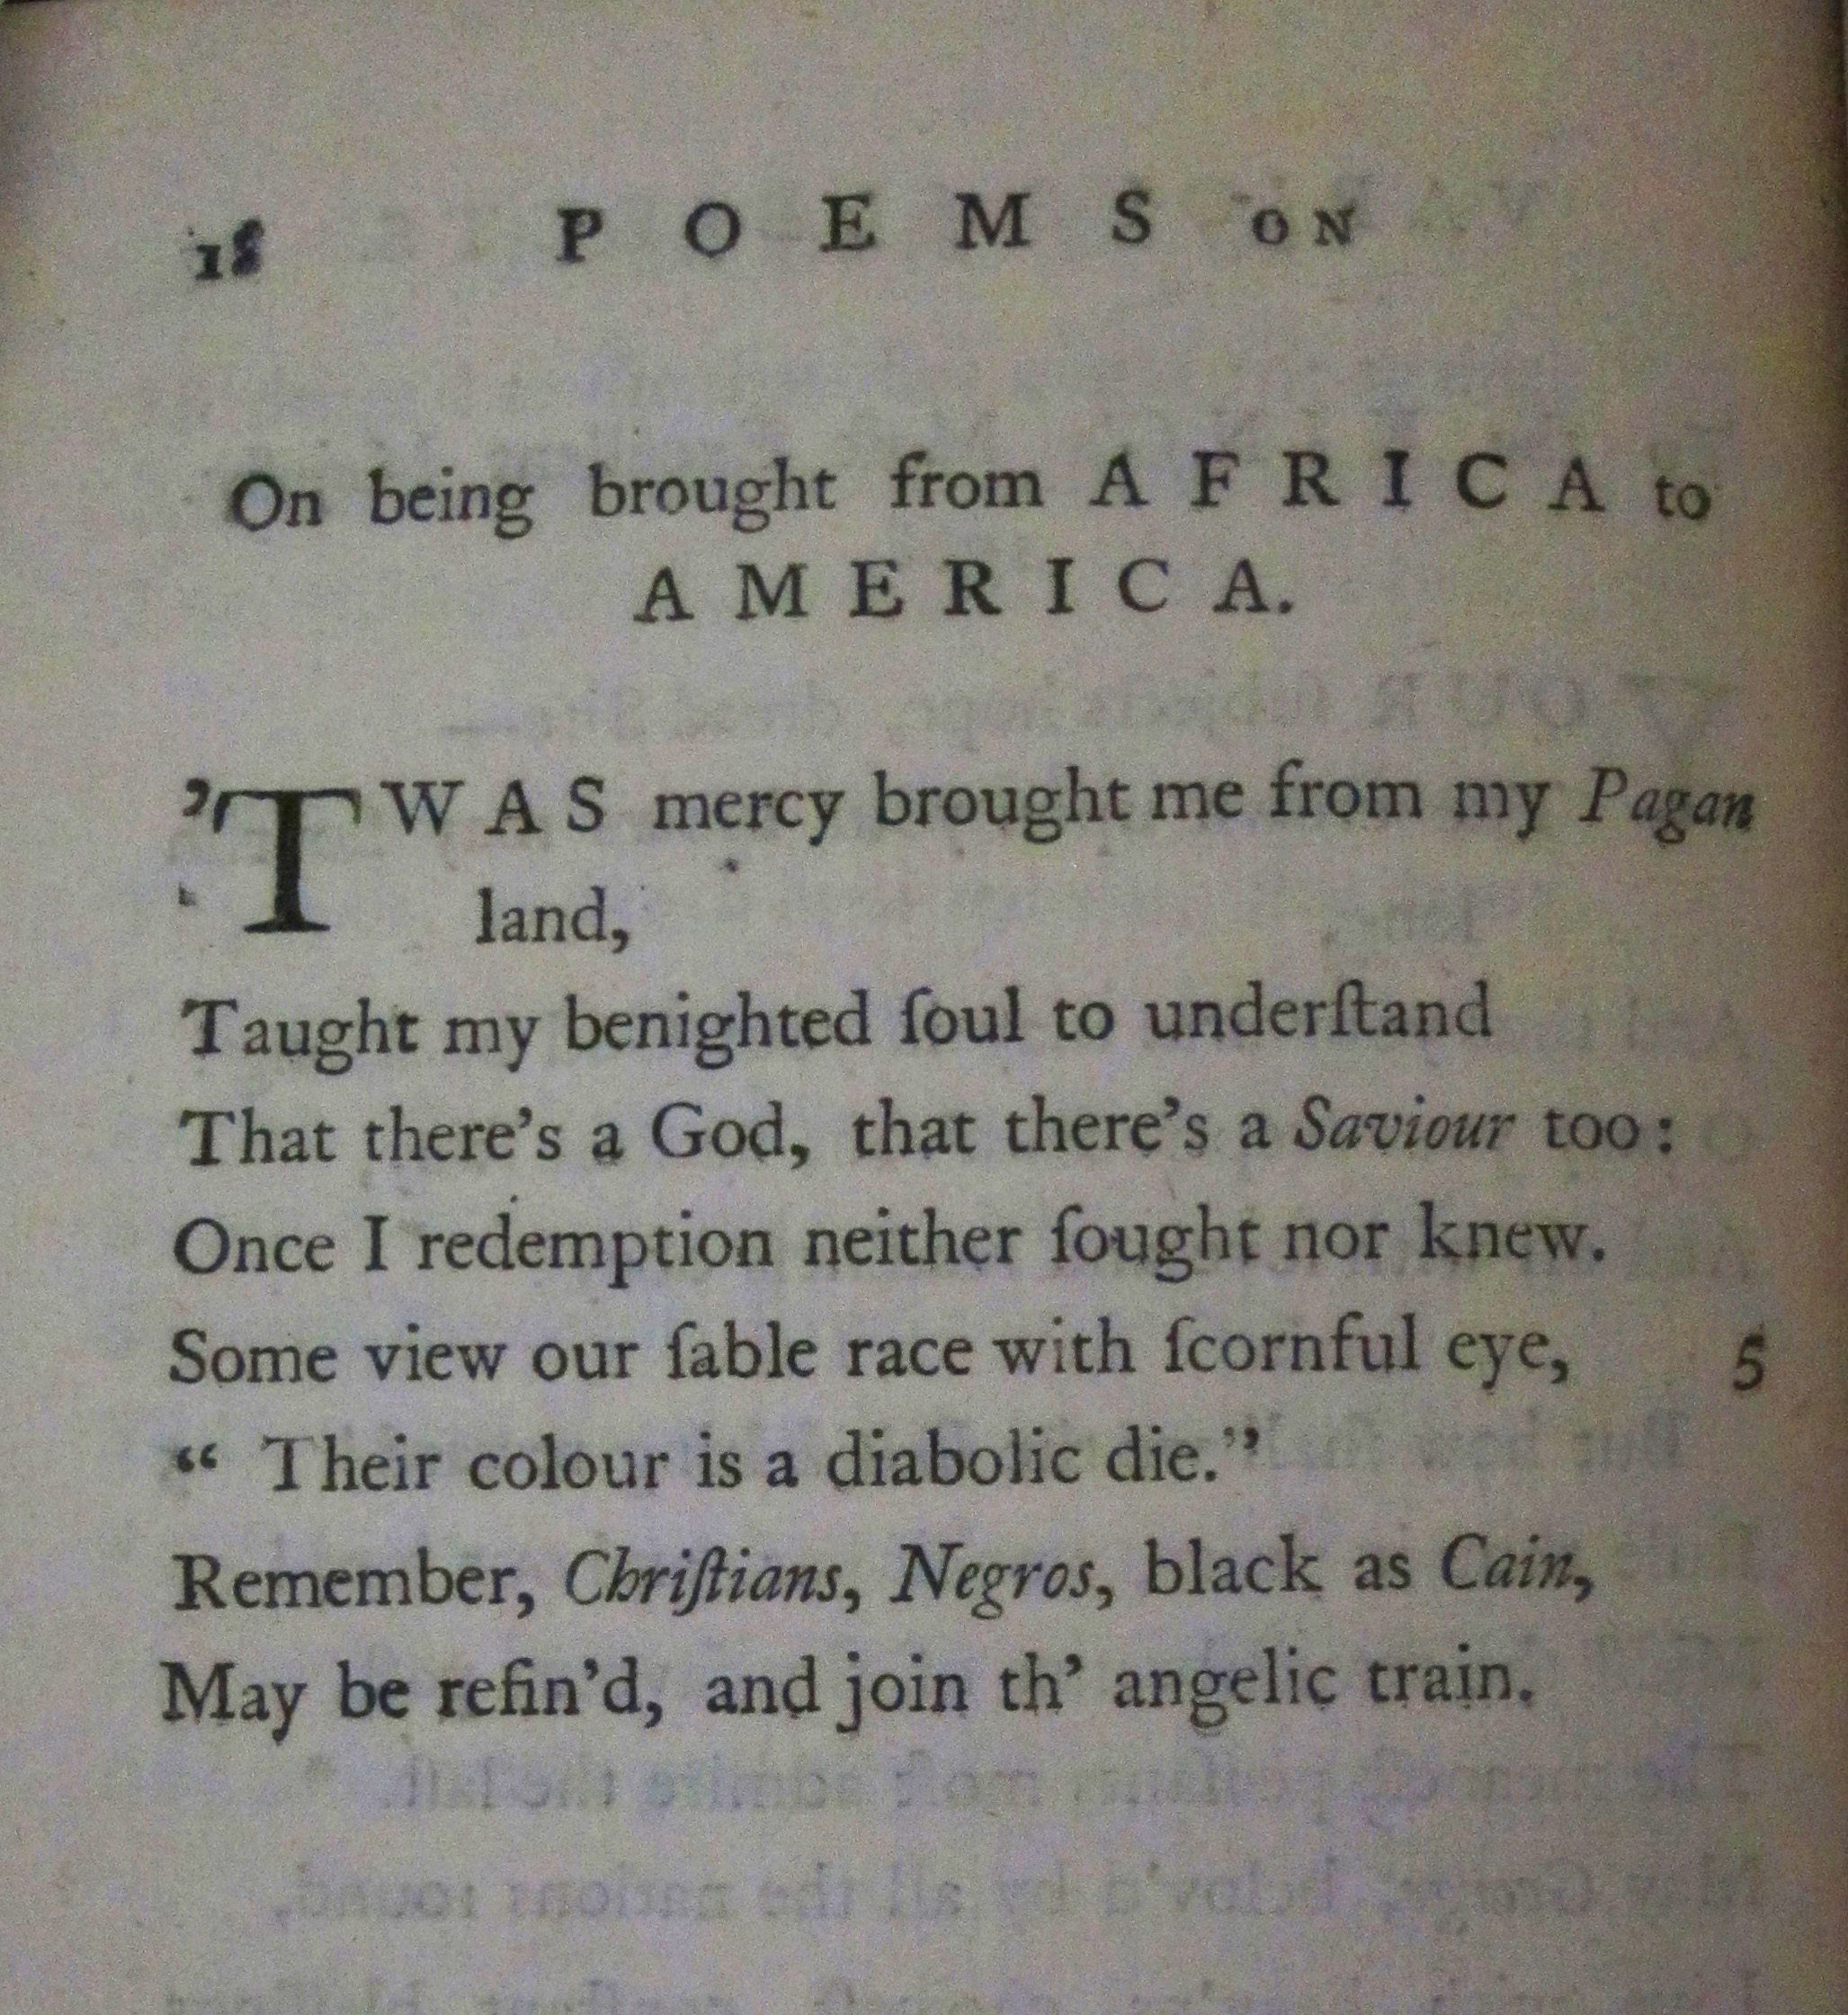 phillis wheatley s on being brought from africa to america phillis wheatley s on being brought from africa to america